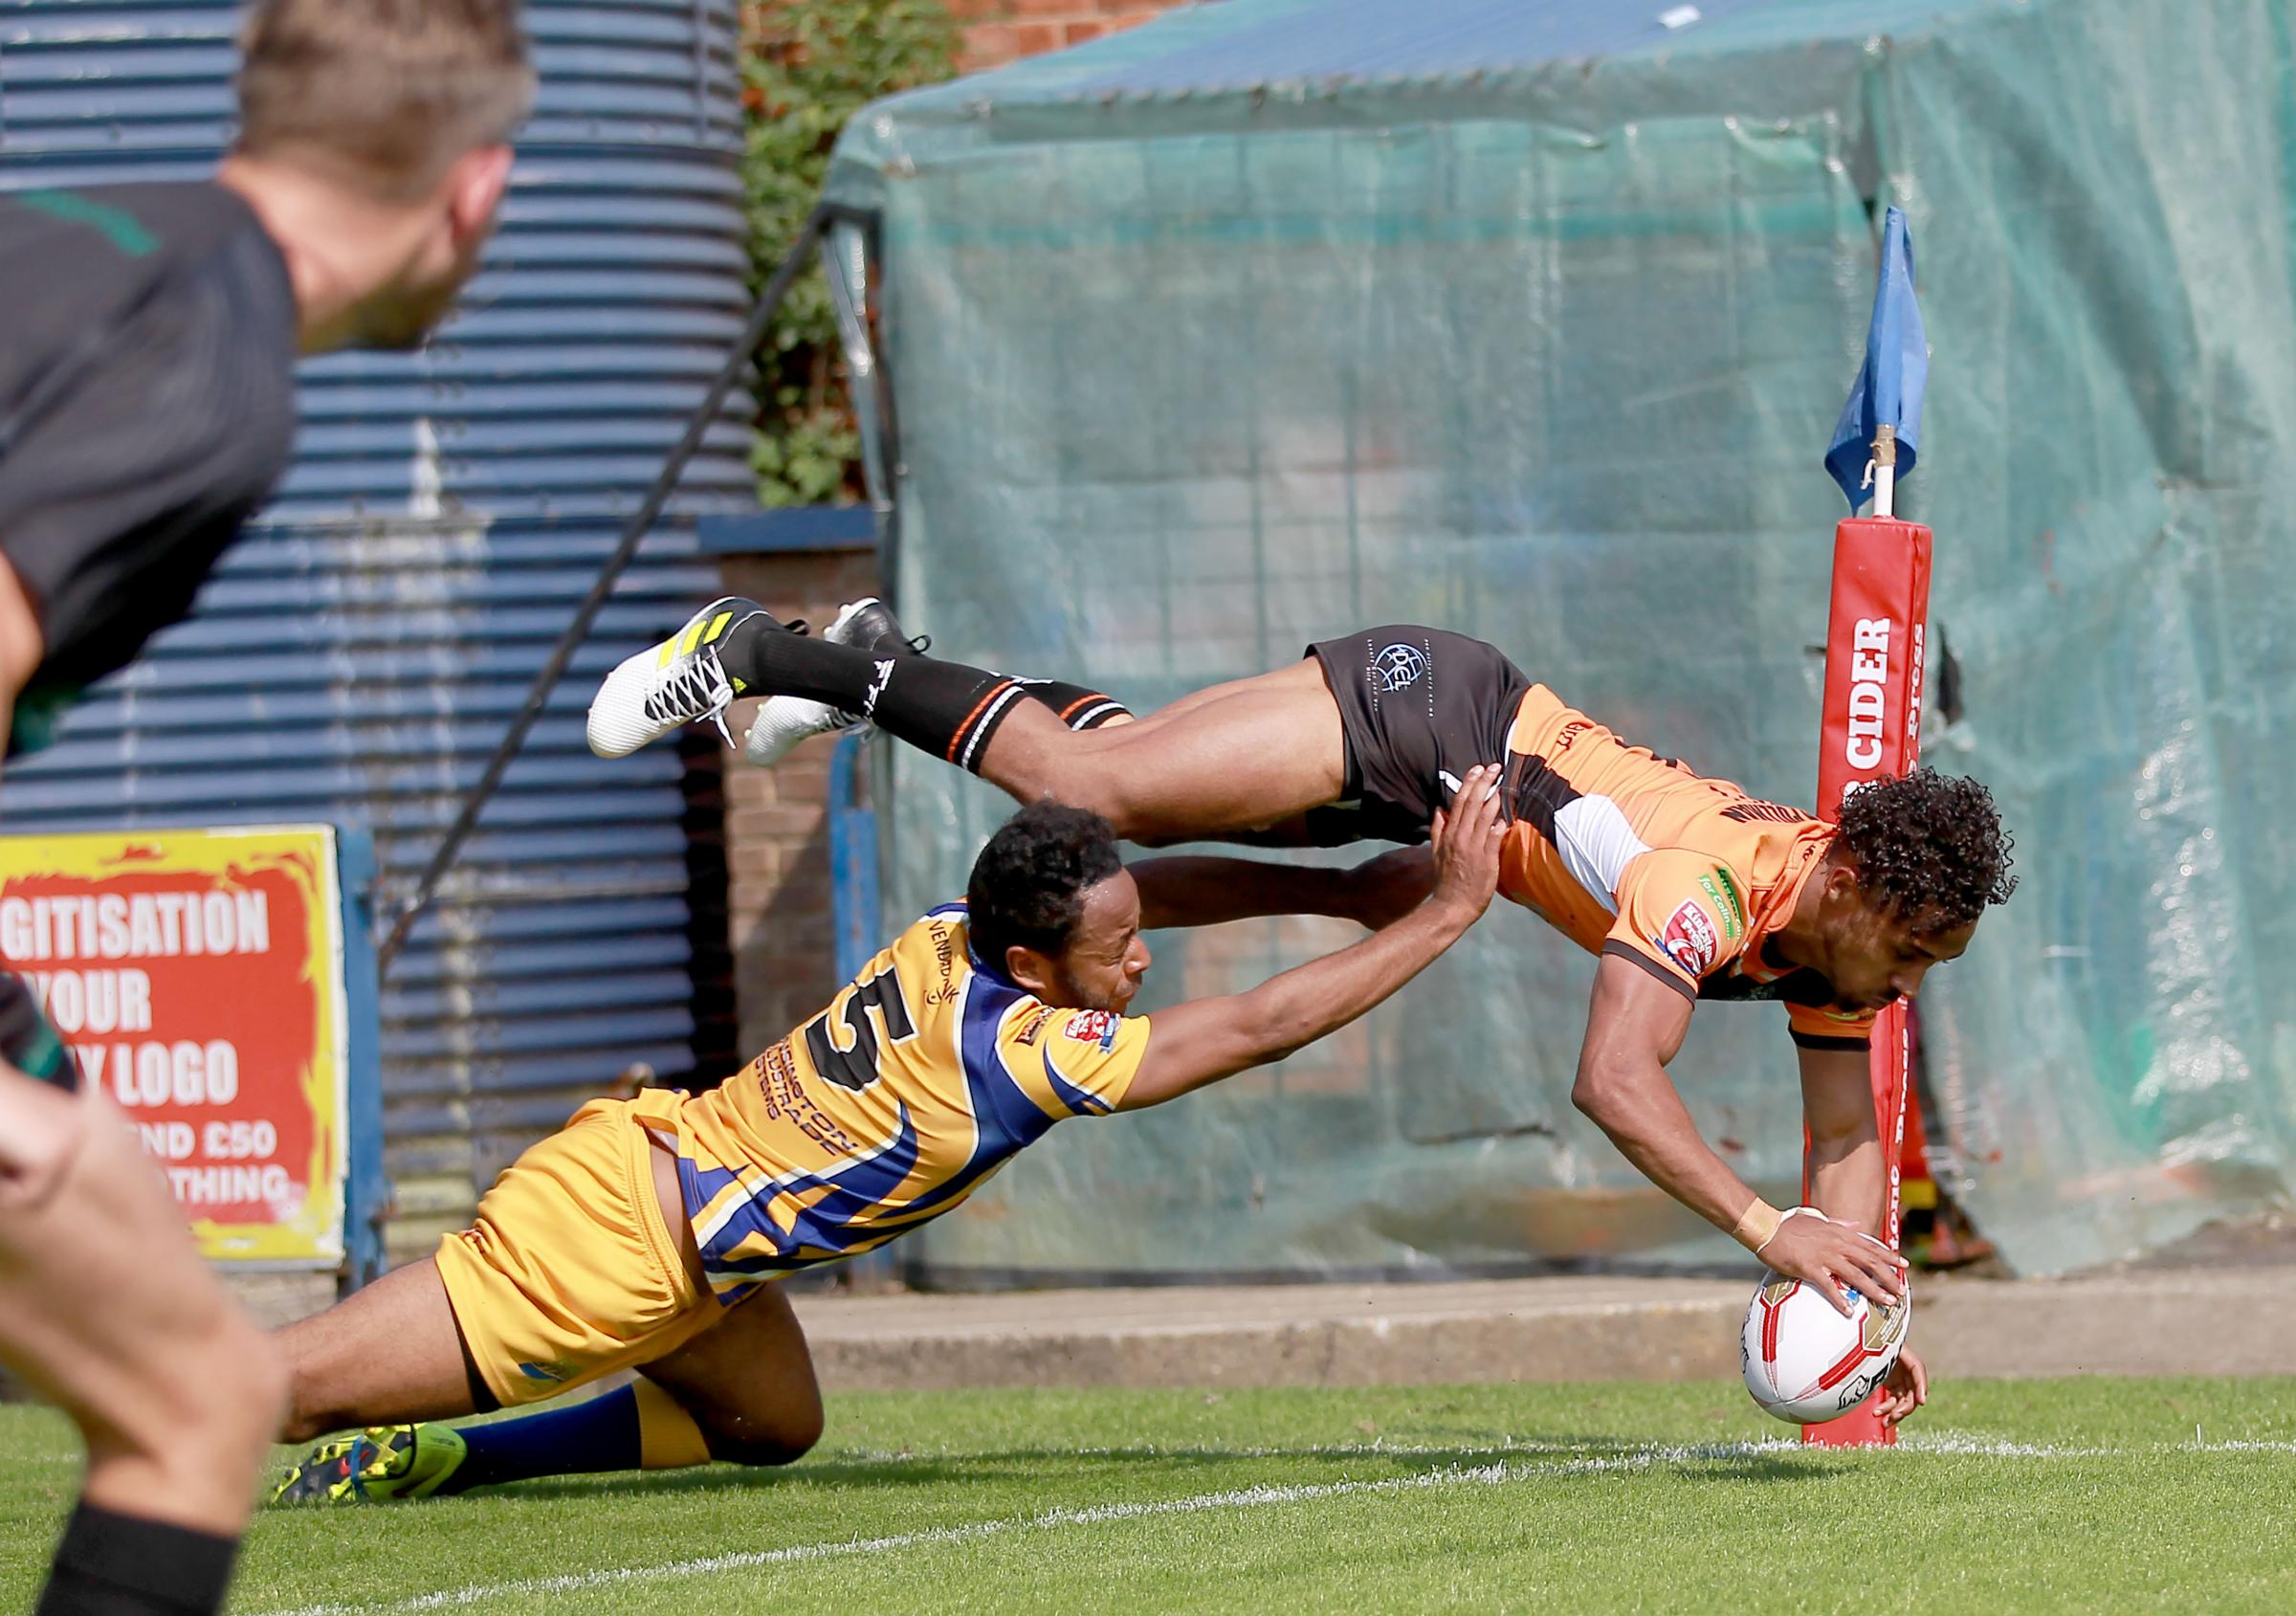 TREBLE YELL: Hemel Stags' Darren Forde can't stop York City Knights winger Dee Foggin-Johnston from spectacularly scoring in the corner for his second hat-trick in consecutive matches last month. Picture: Gordon Clayton